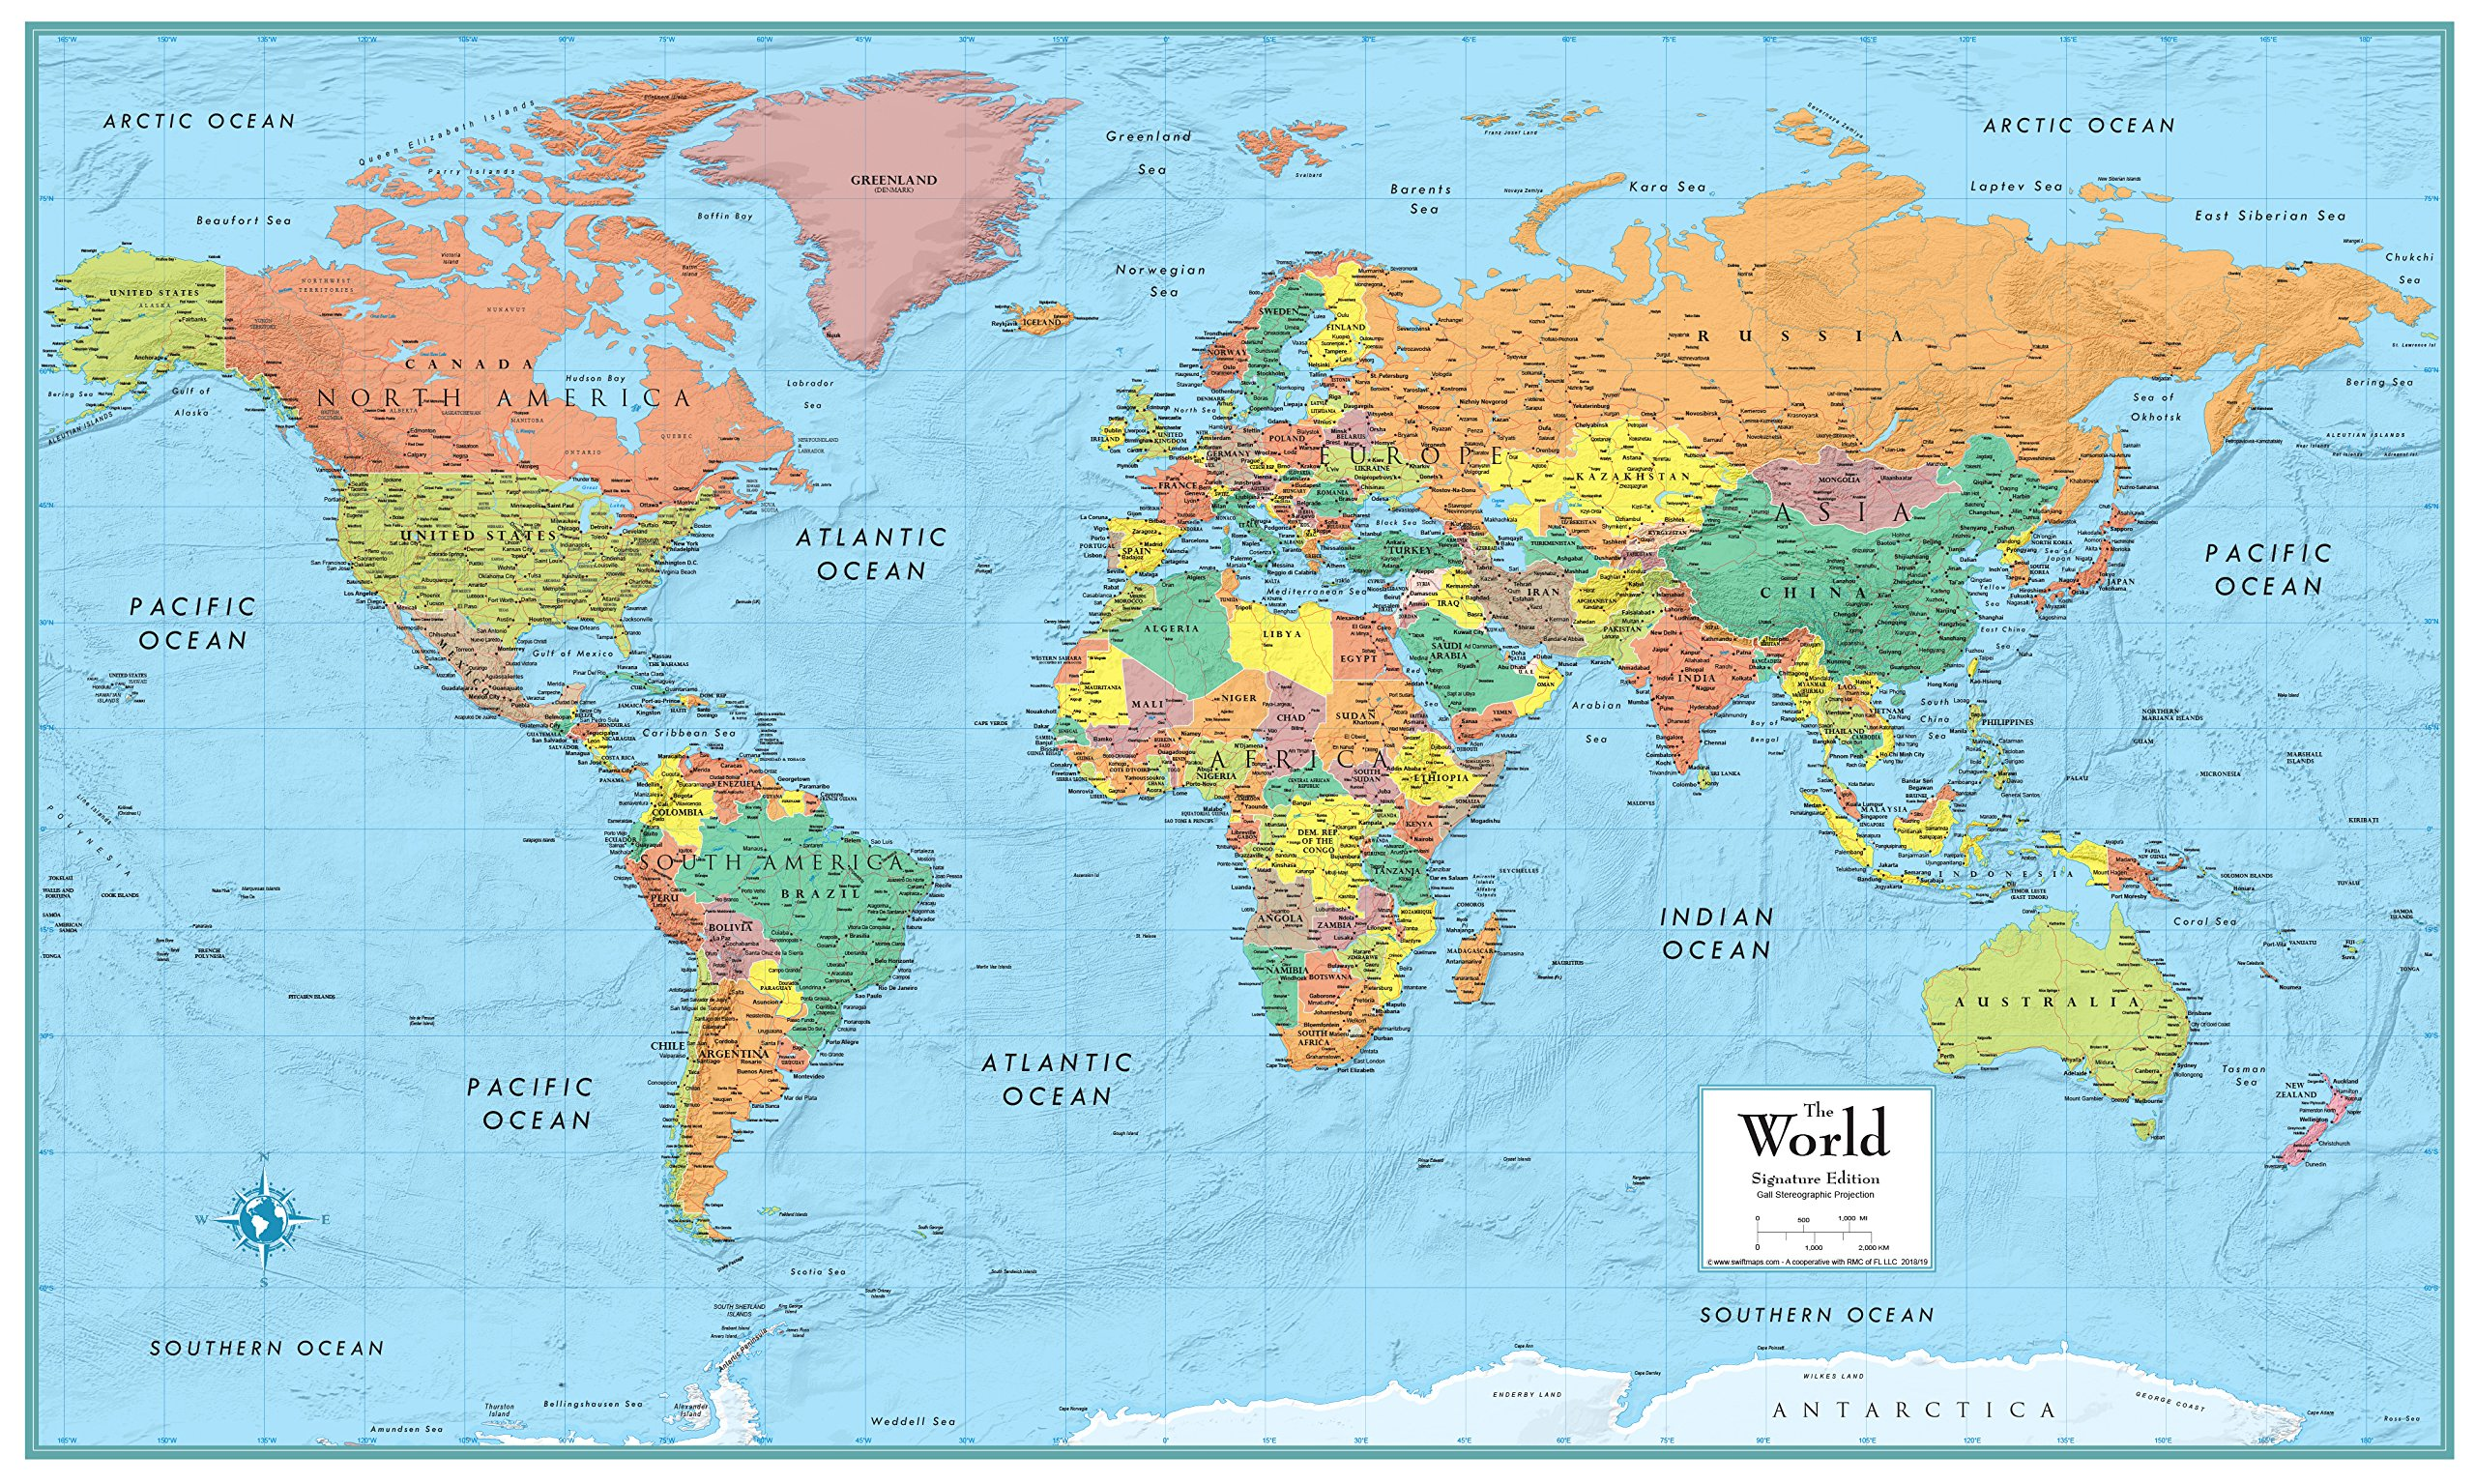 32x50 RMC World Signature Push-Pin Travel Wall Map Foam Board Mounted or Framed (Black Framed) by Swiftmaps